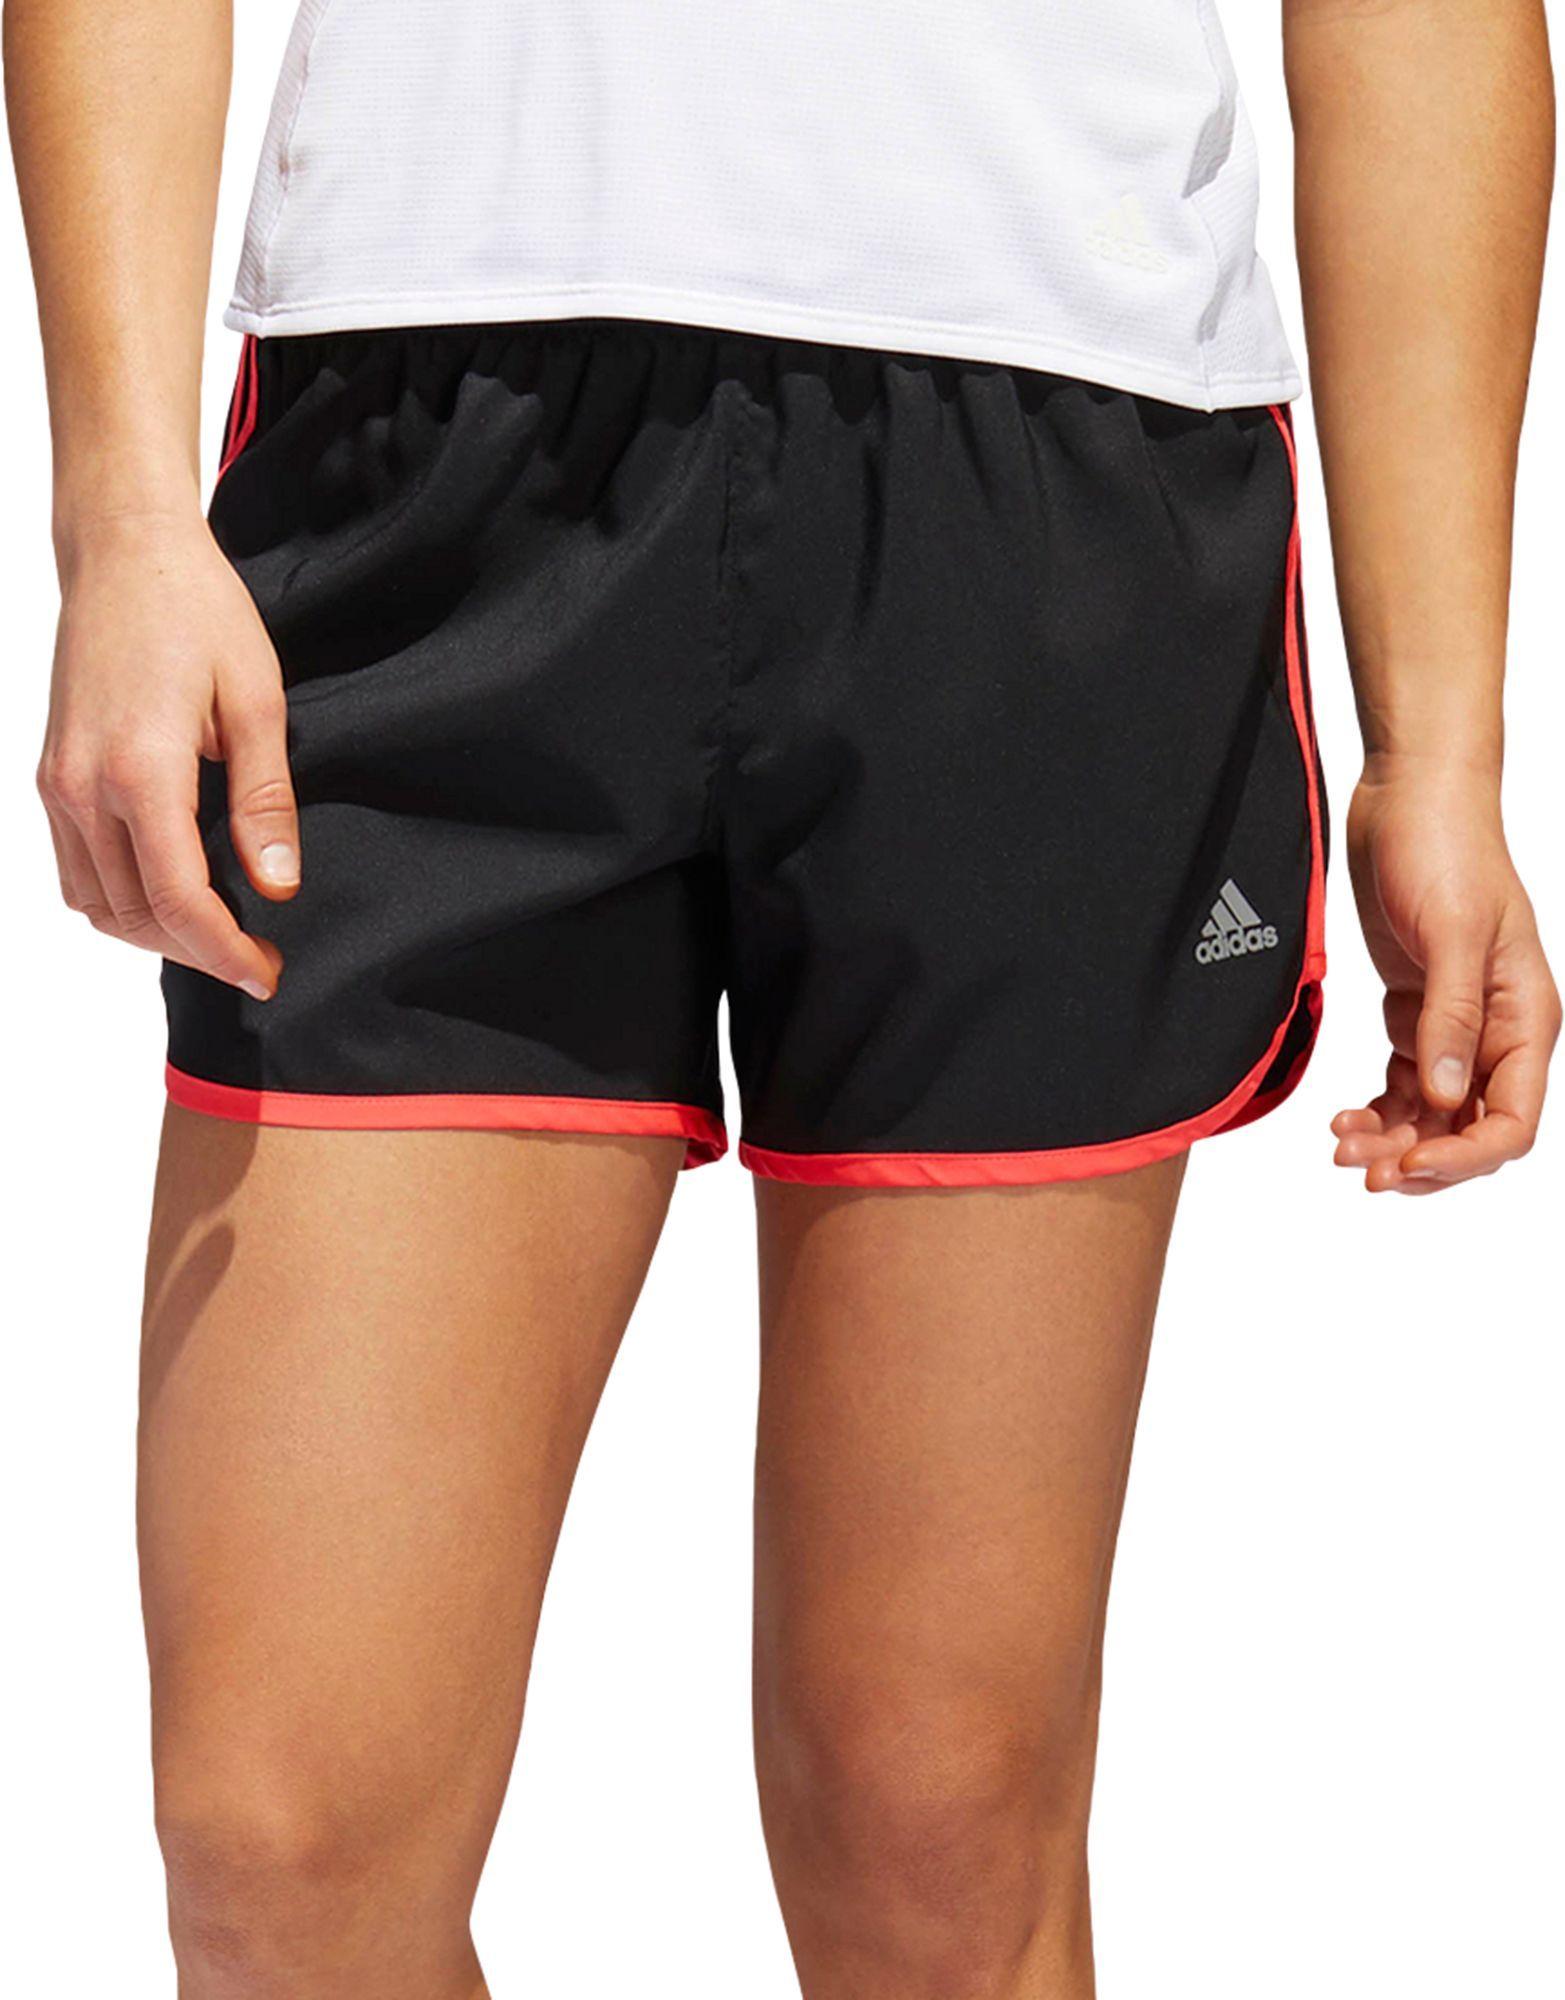 adidas Marathon 20 Shorts Women black